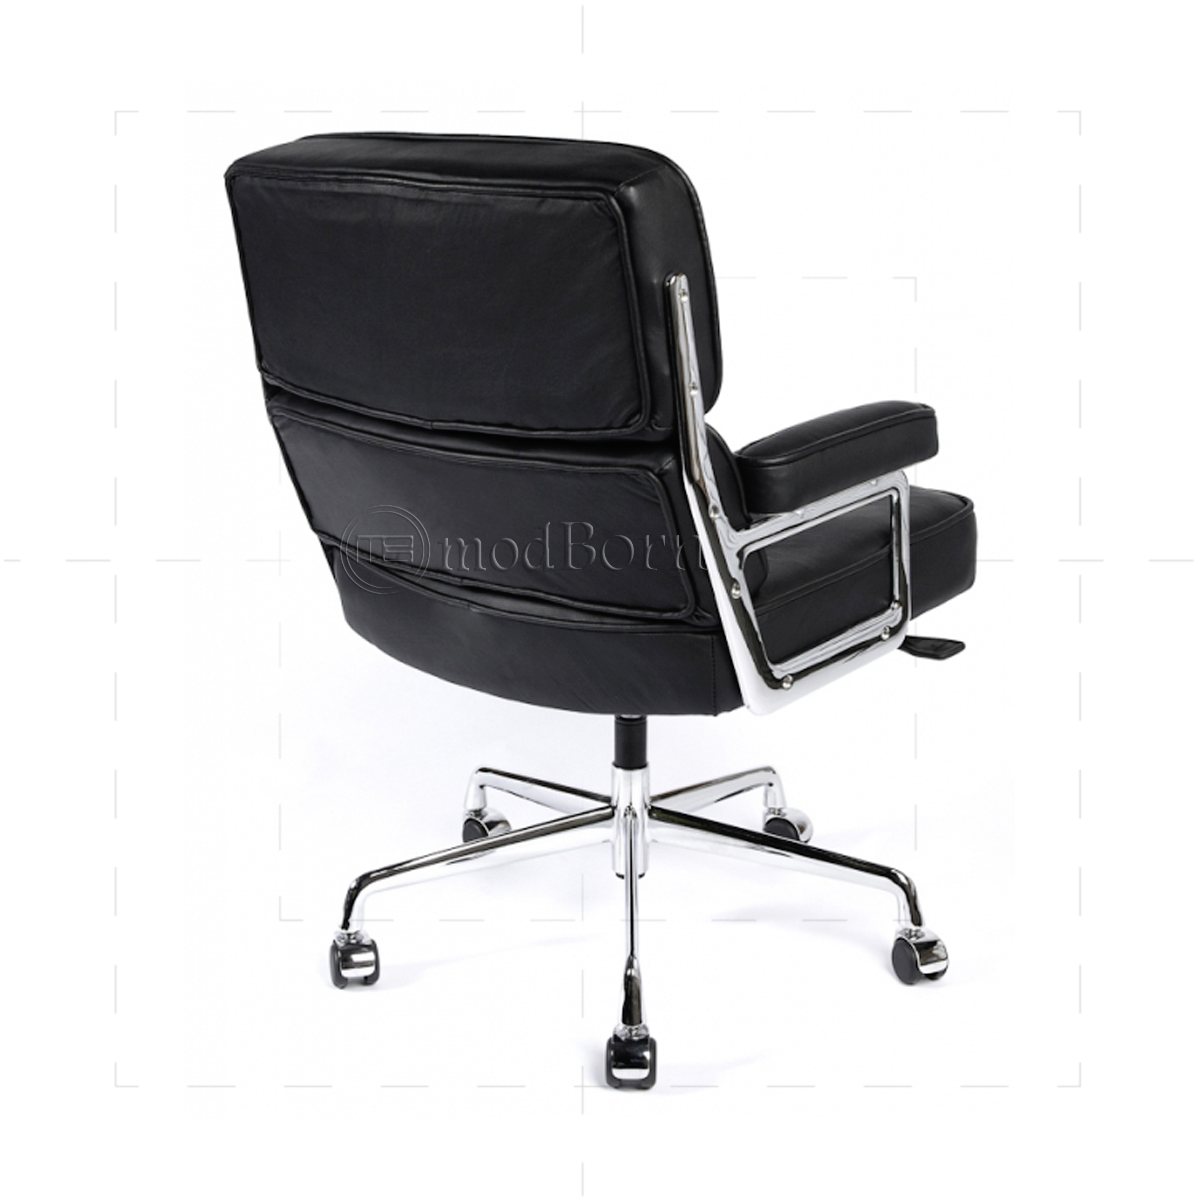 Ea104 eames style office lobby black leather executive chair for Eames replica deutschland